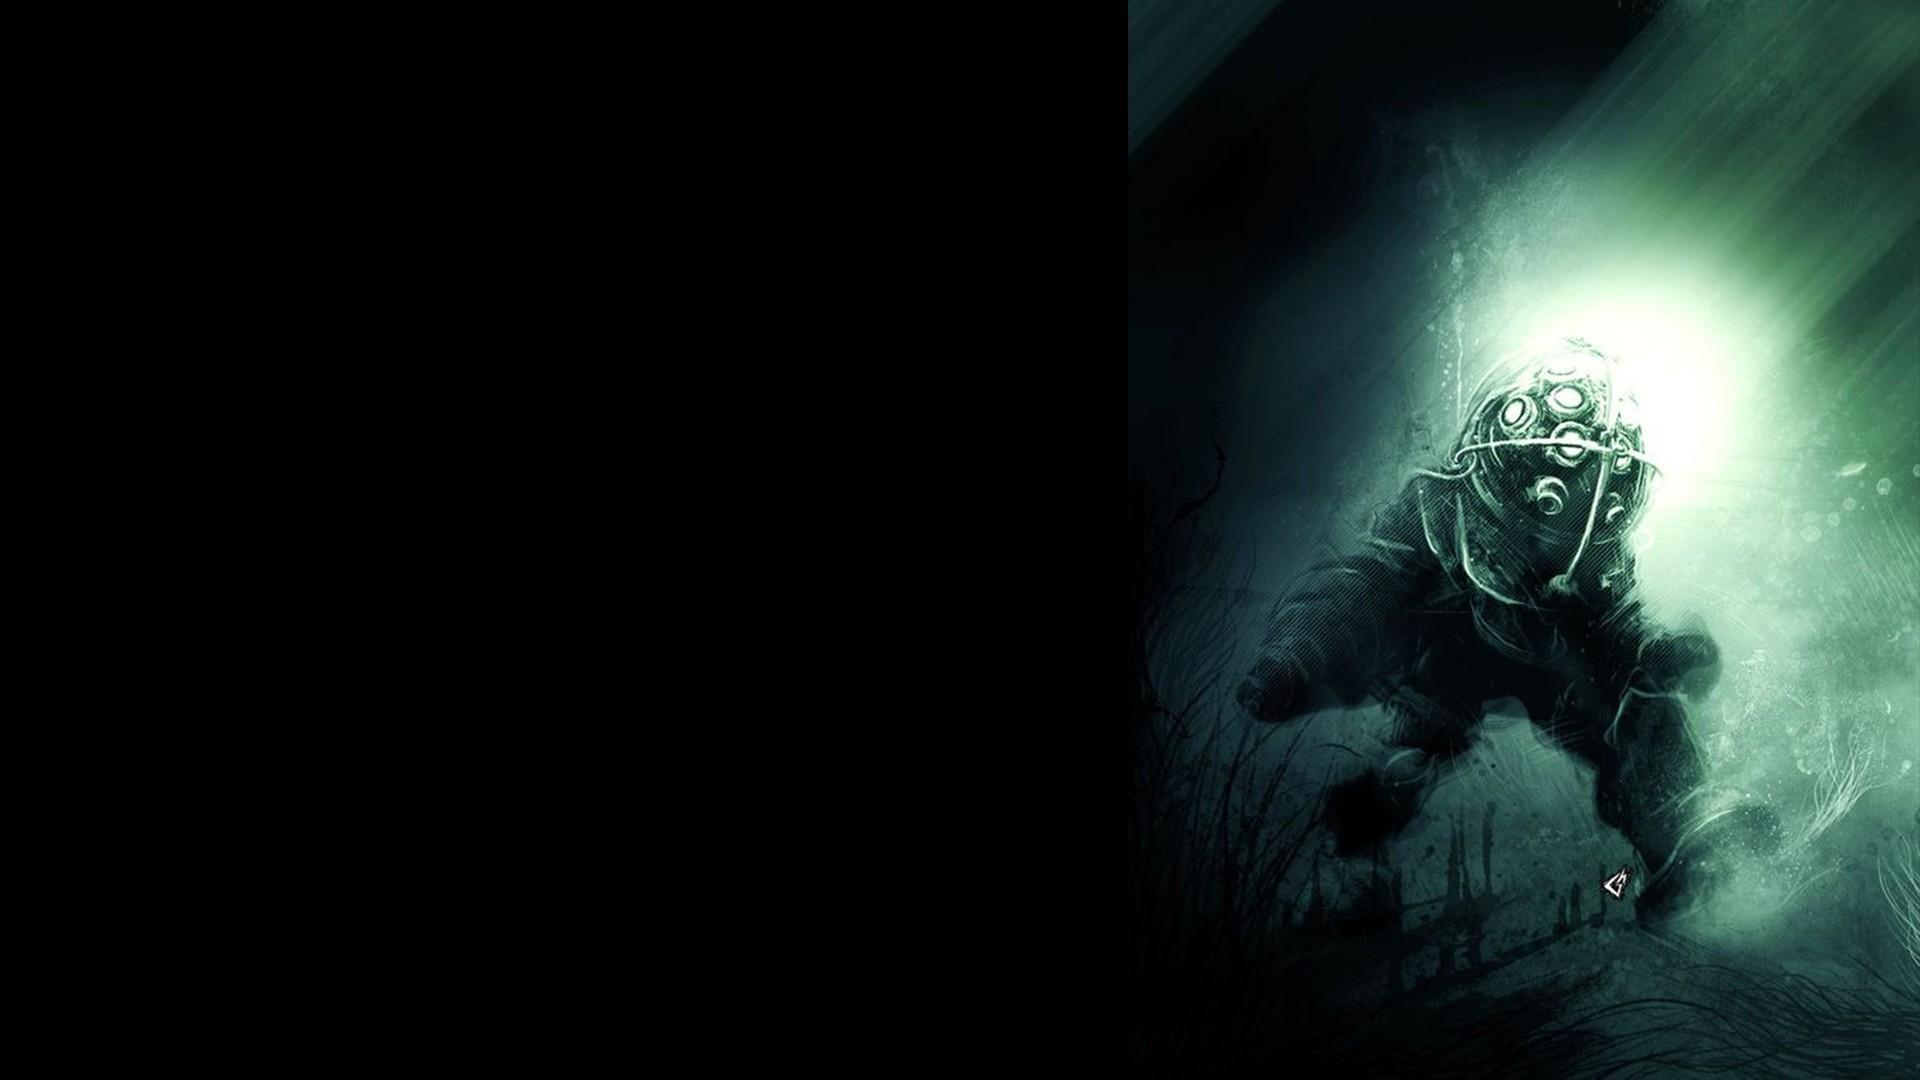 Bioshock rapture gavade 2k underwater fan art wallpaper 68096 1920x1080